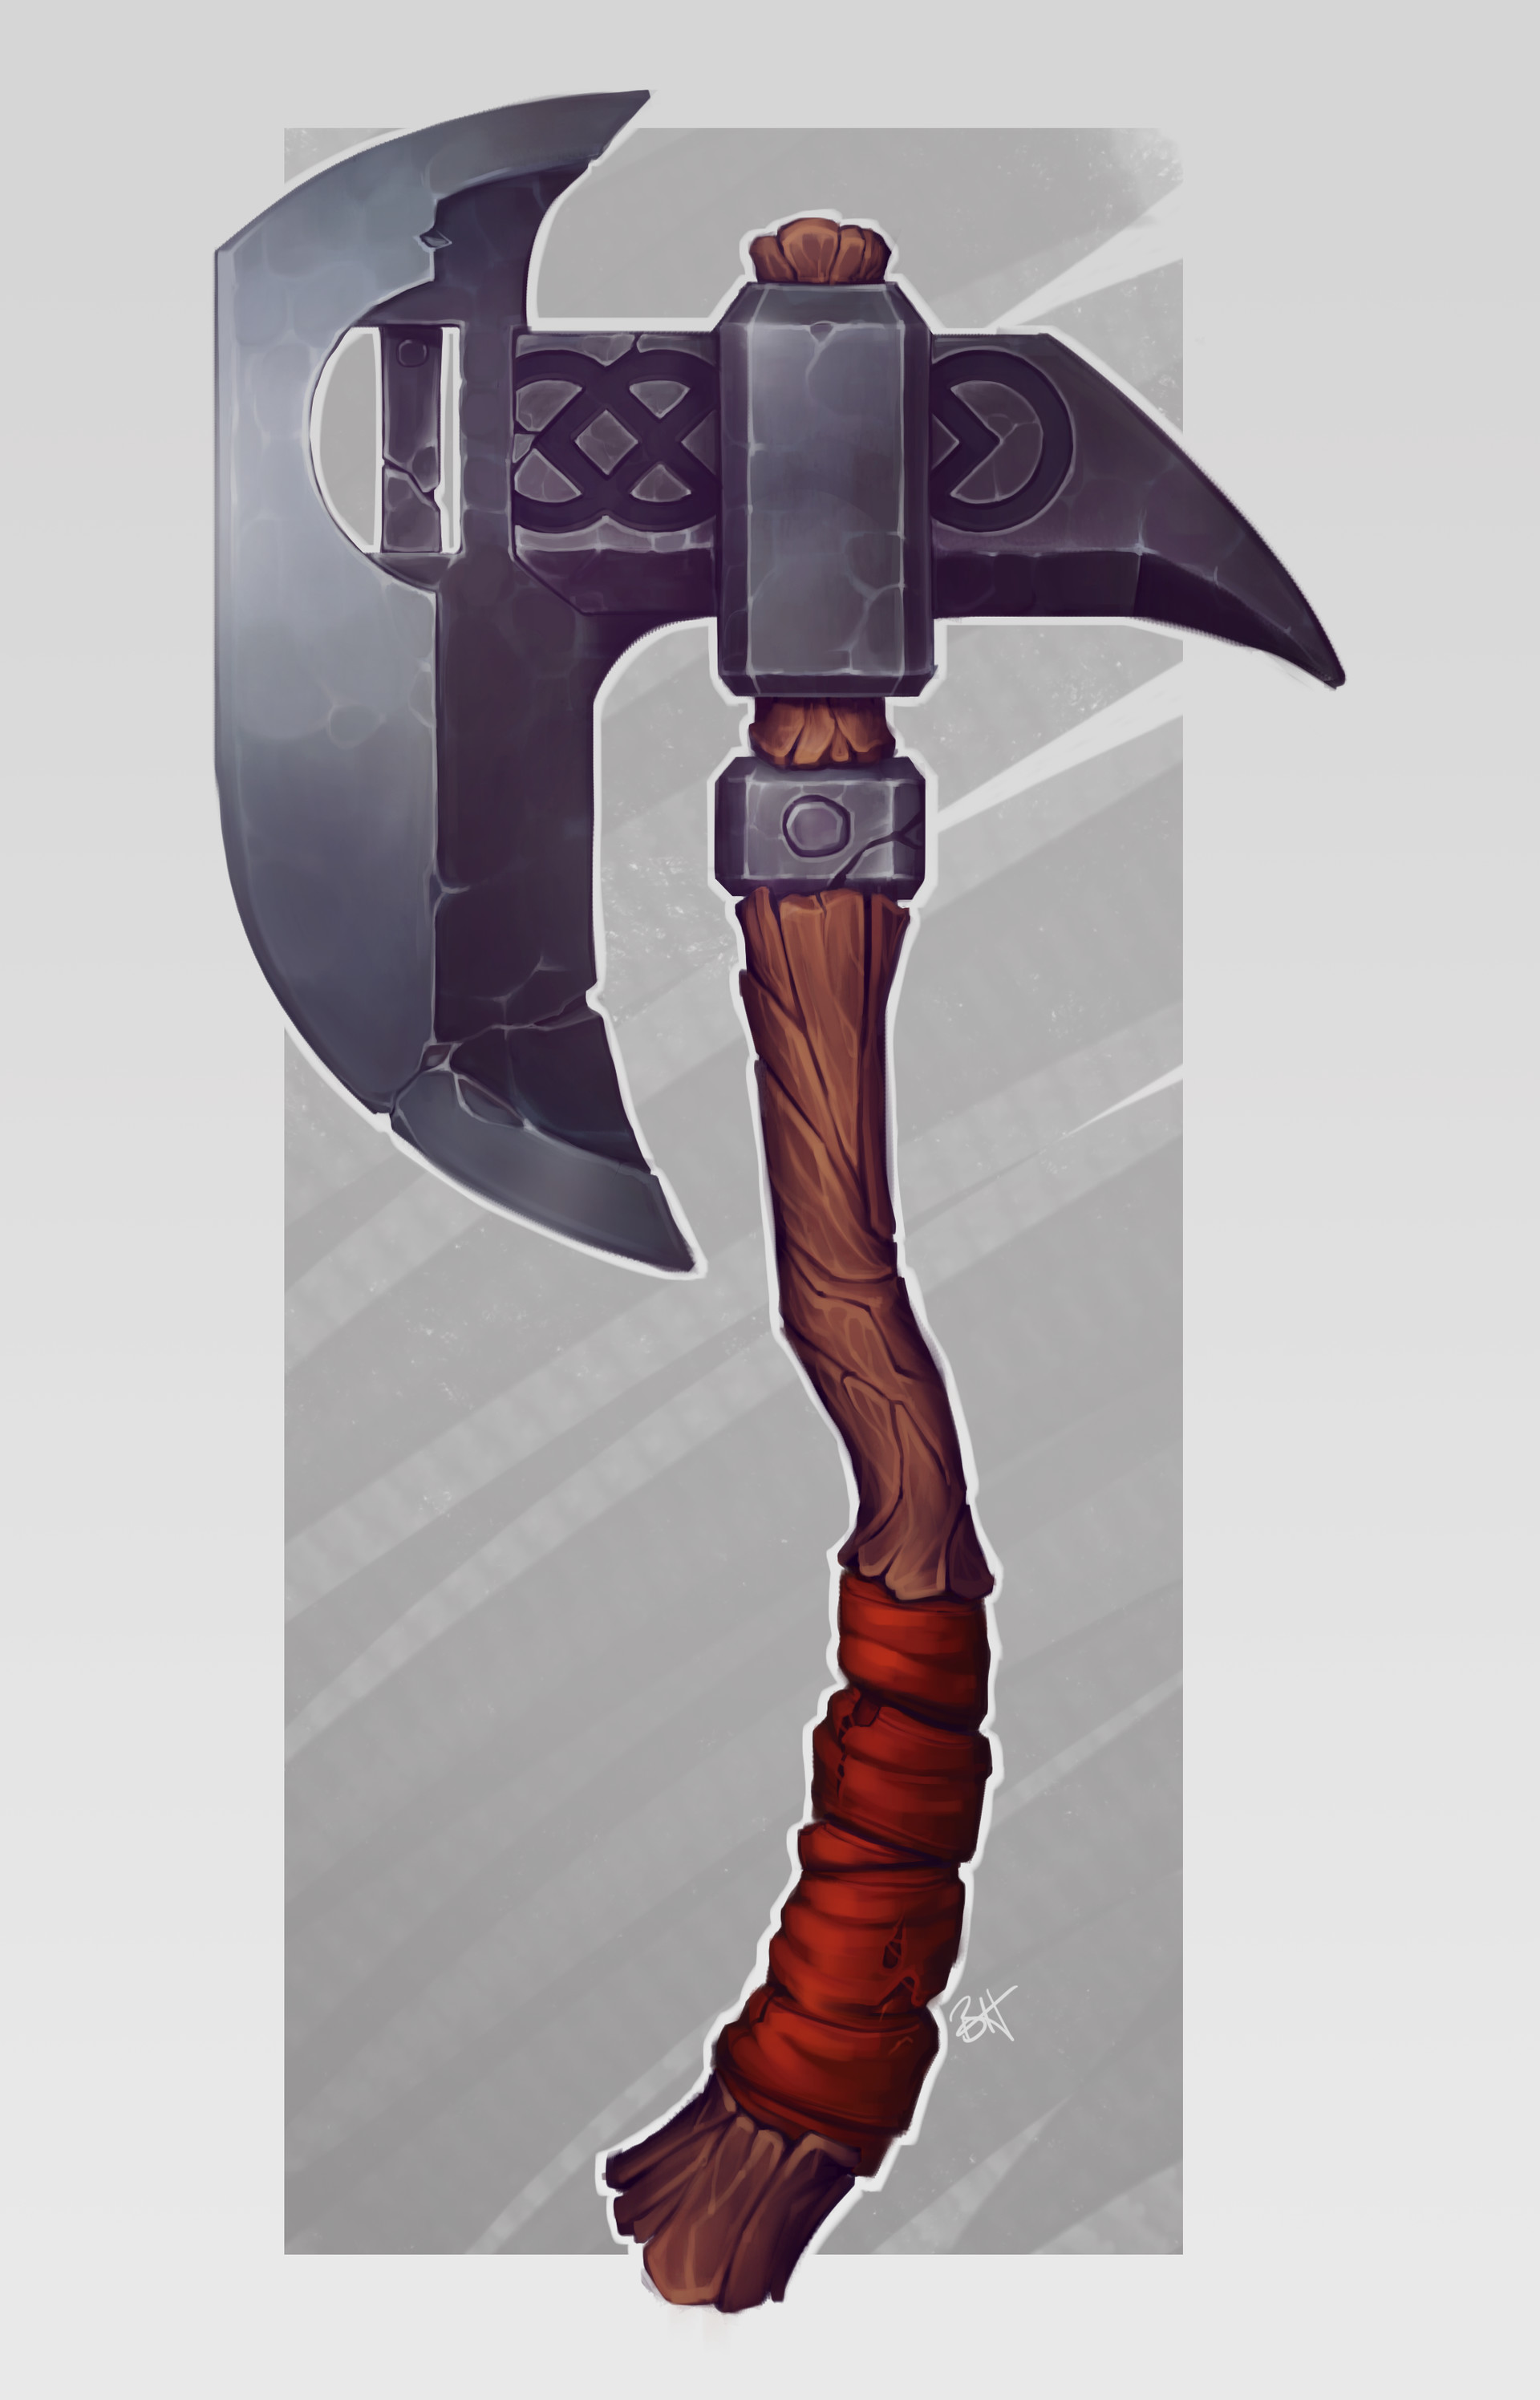 Stylized Weapons